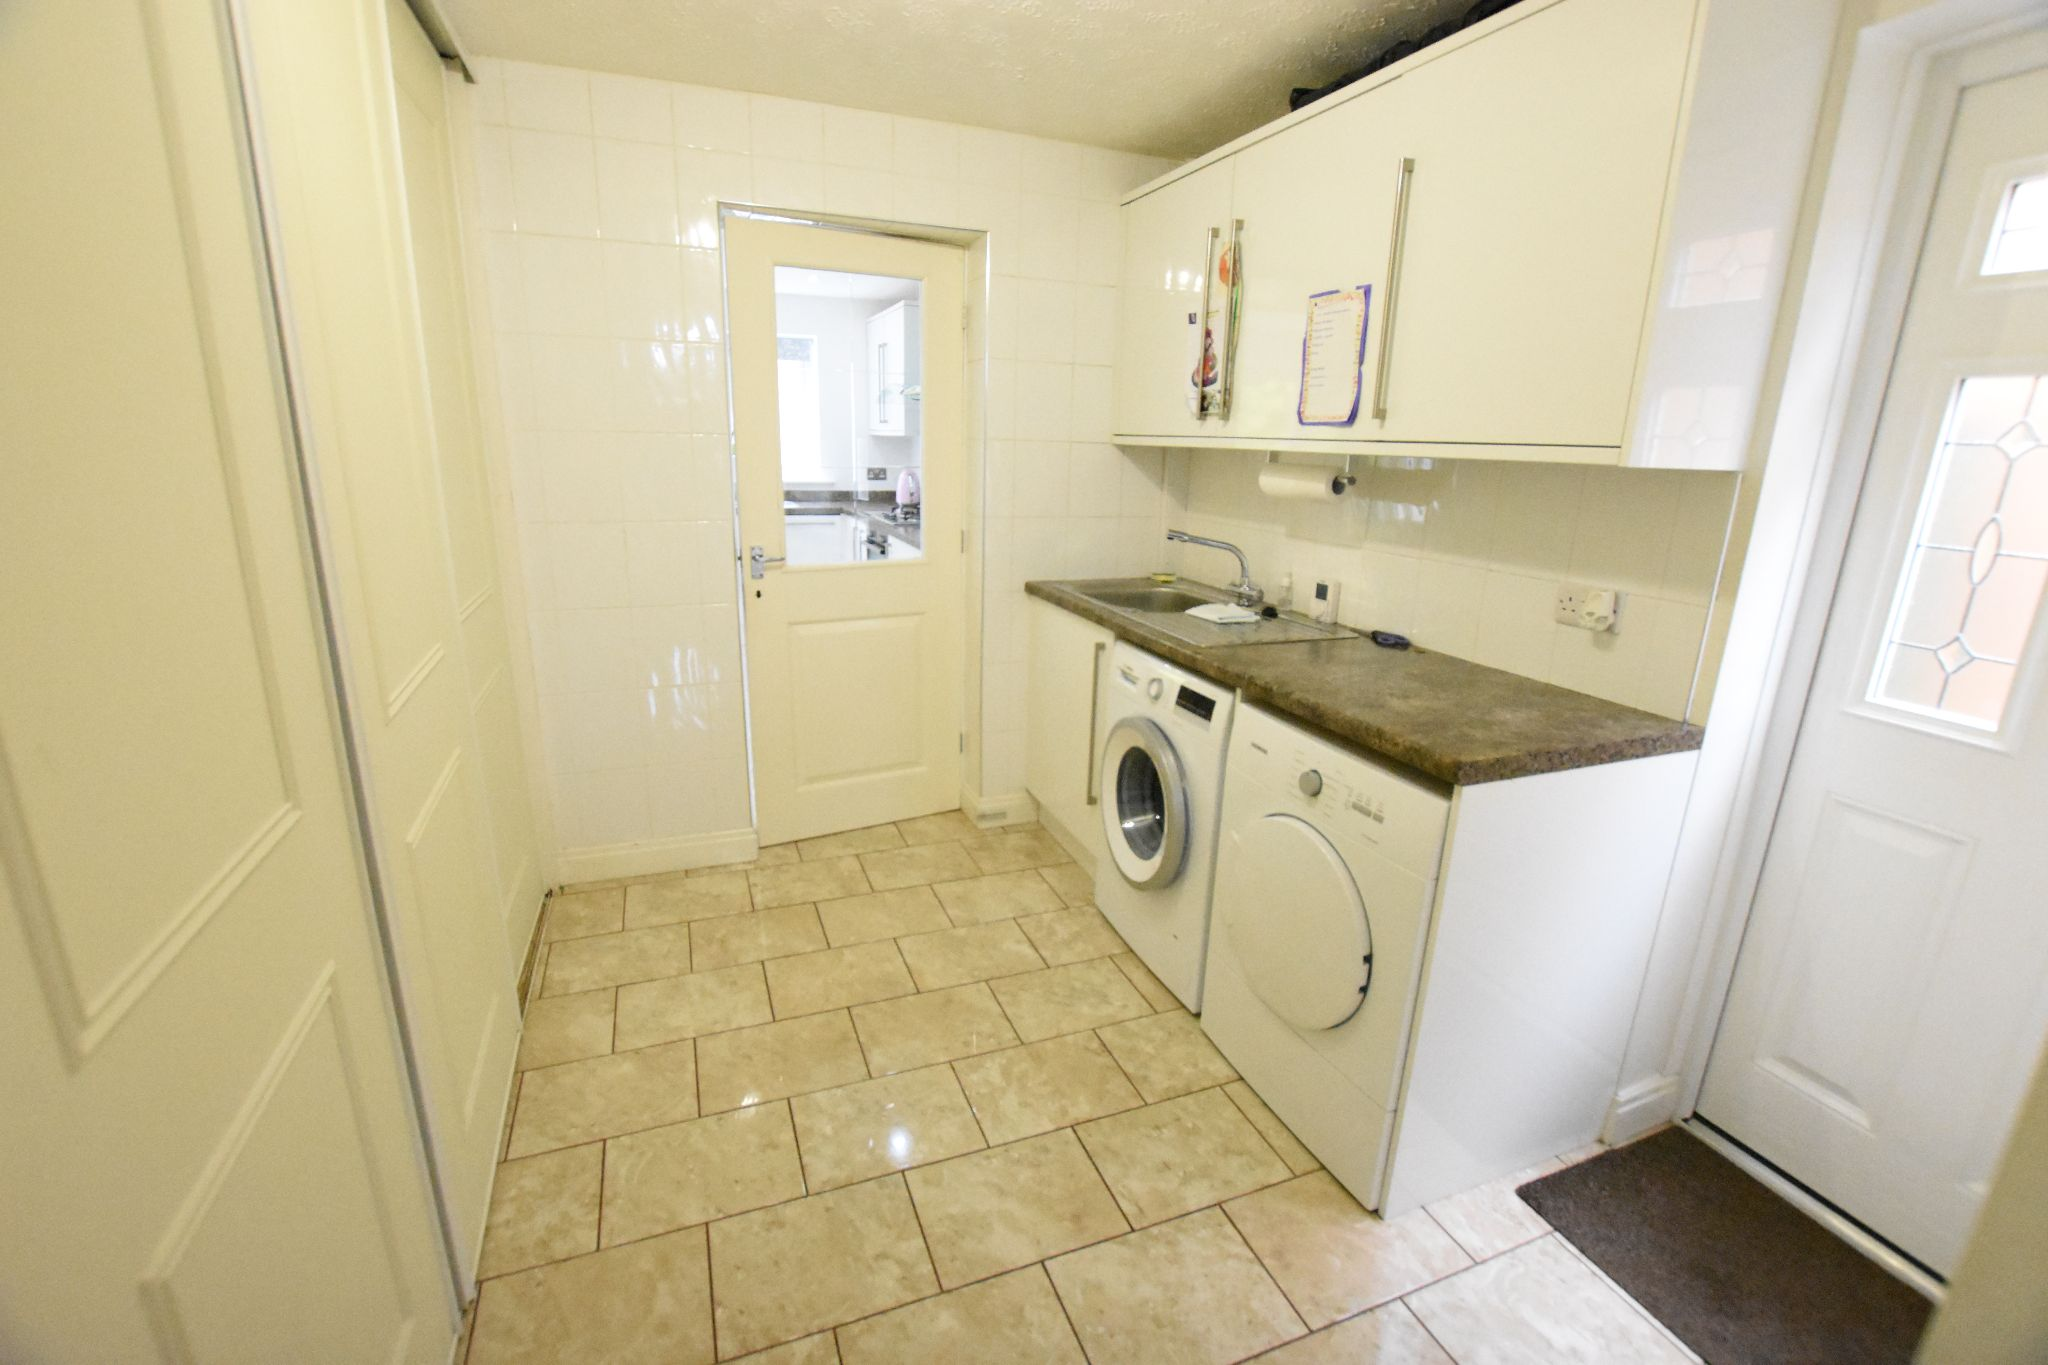 3 bedroom detached house Sold STC in Preston - Utility